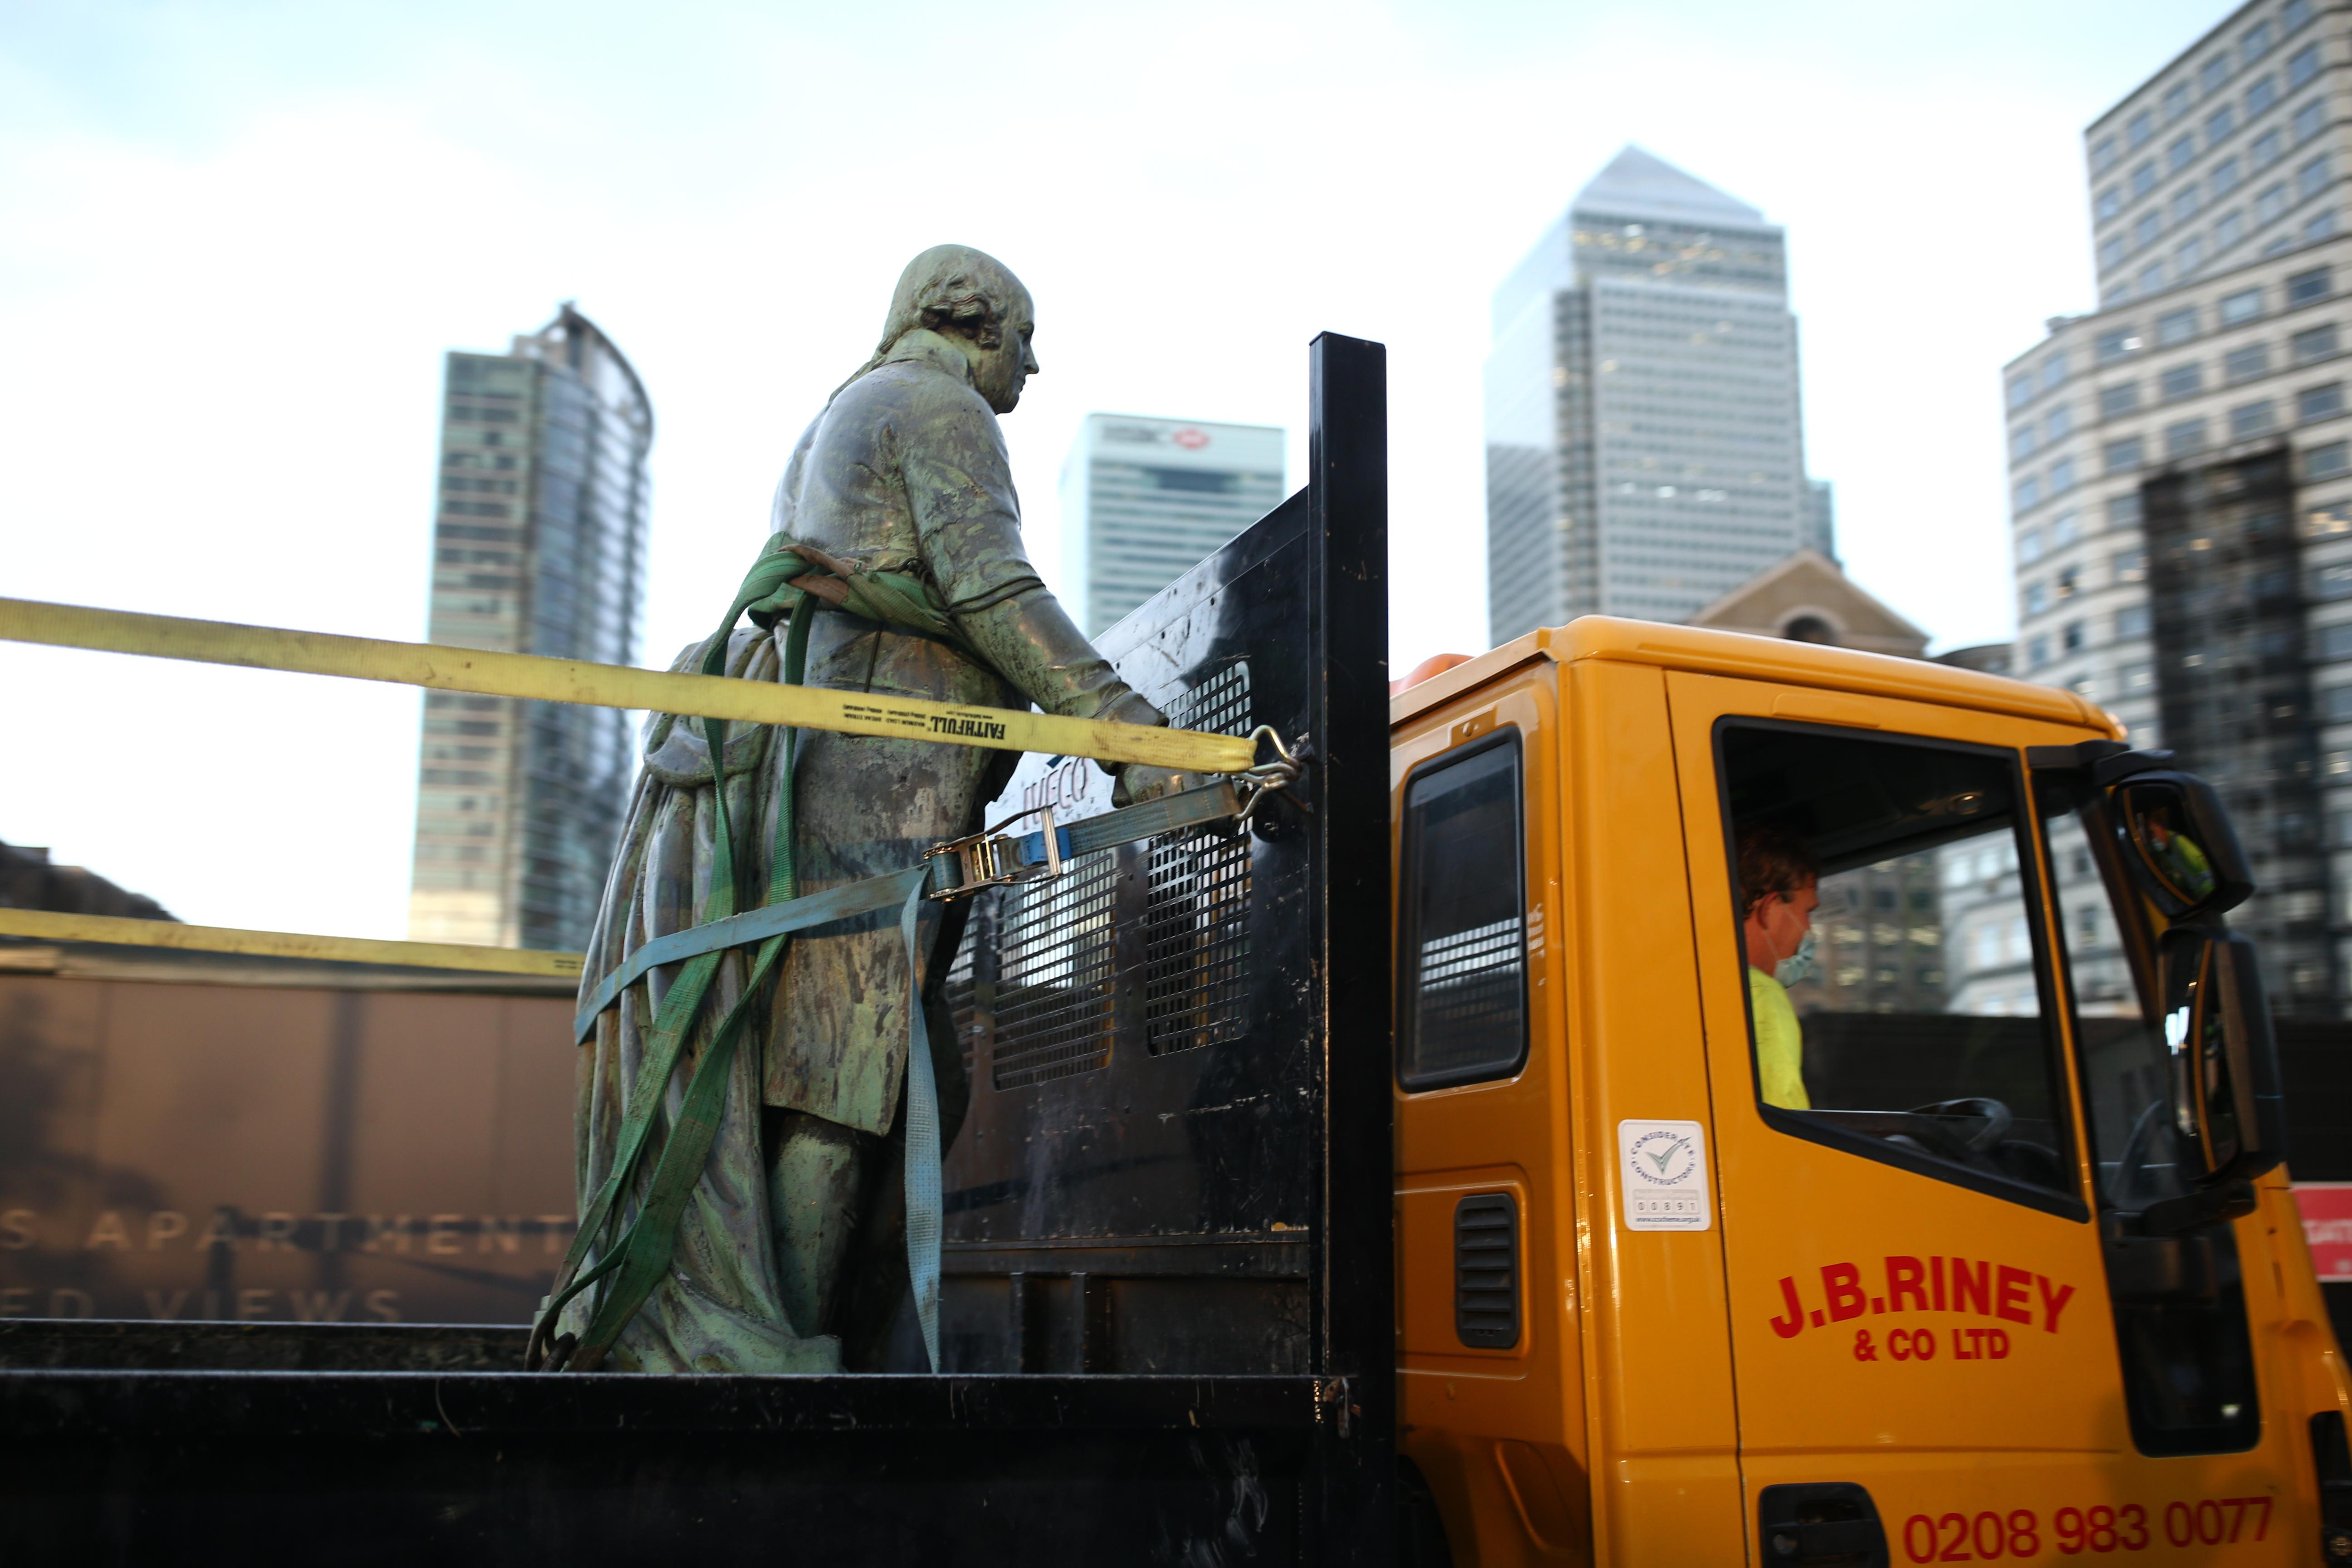 Workers take down a statue of slave owner Robert Milligan at West India Quay, east London as Labour councils across England and Wales will begin reviewing monuments and statues in their towns and cities, after a protest saw anti-racism campaigners tear down a statue of a slave trader in Bristol. (Photo by Yui Mok/PA Images via Getty Images)